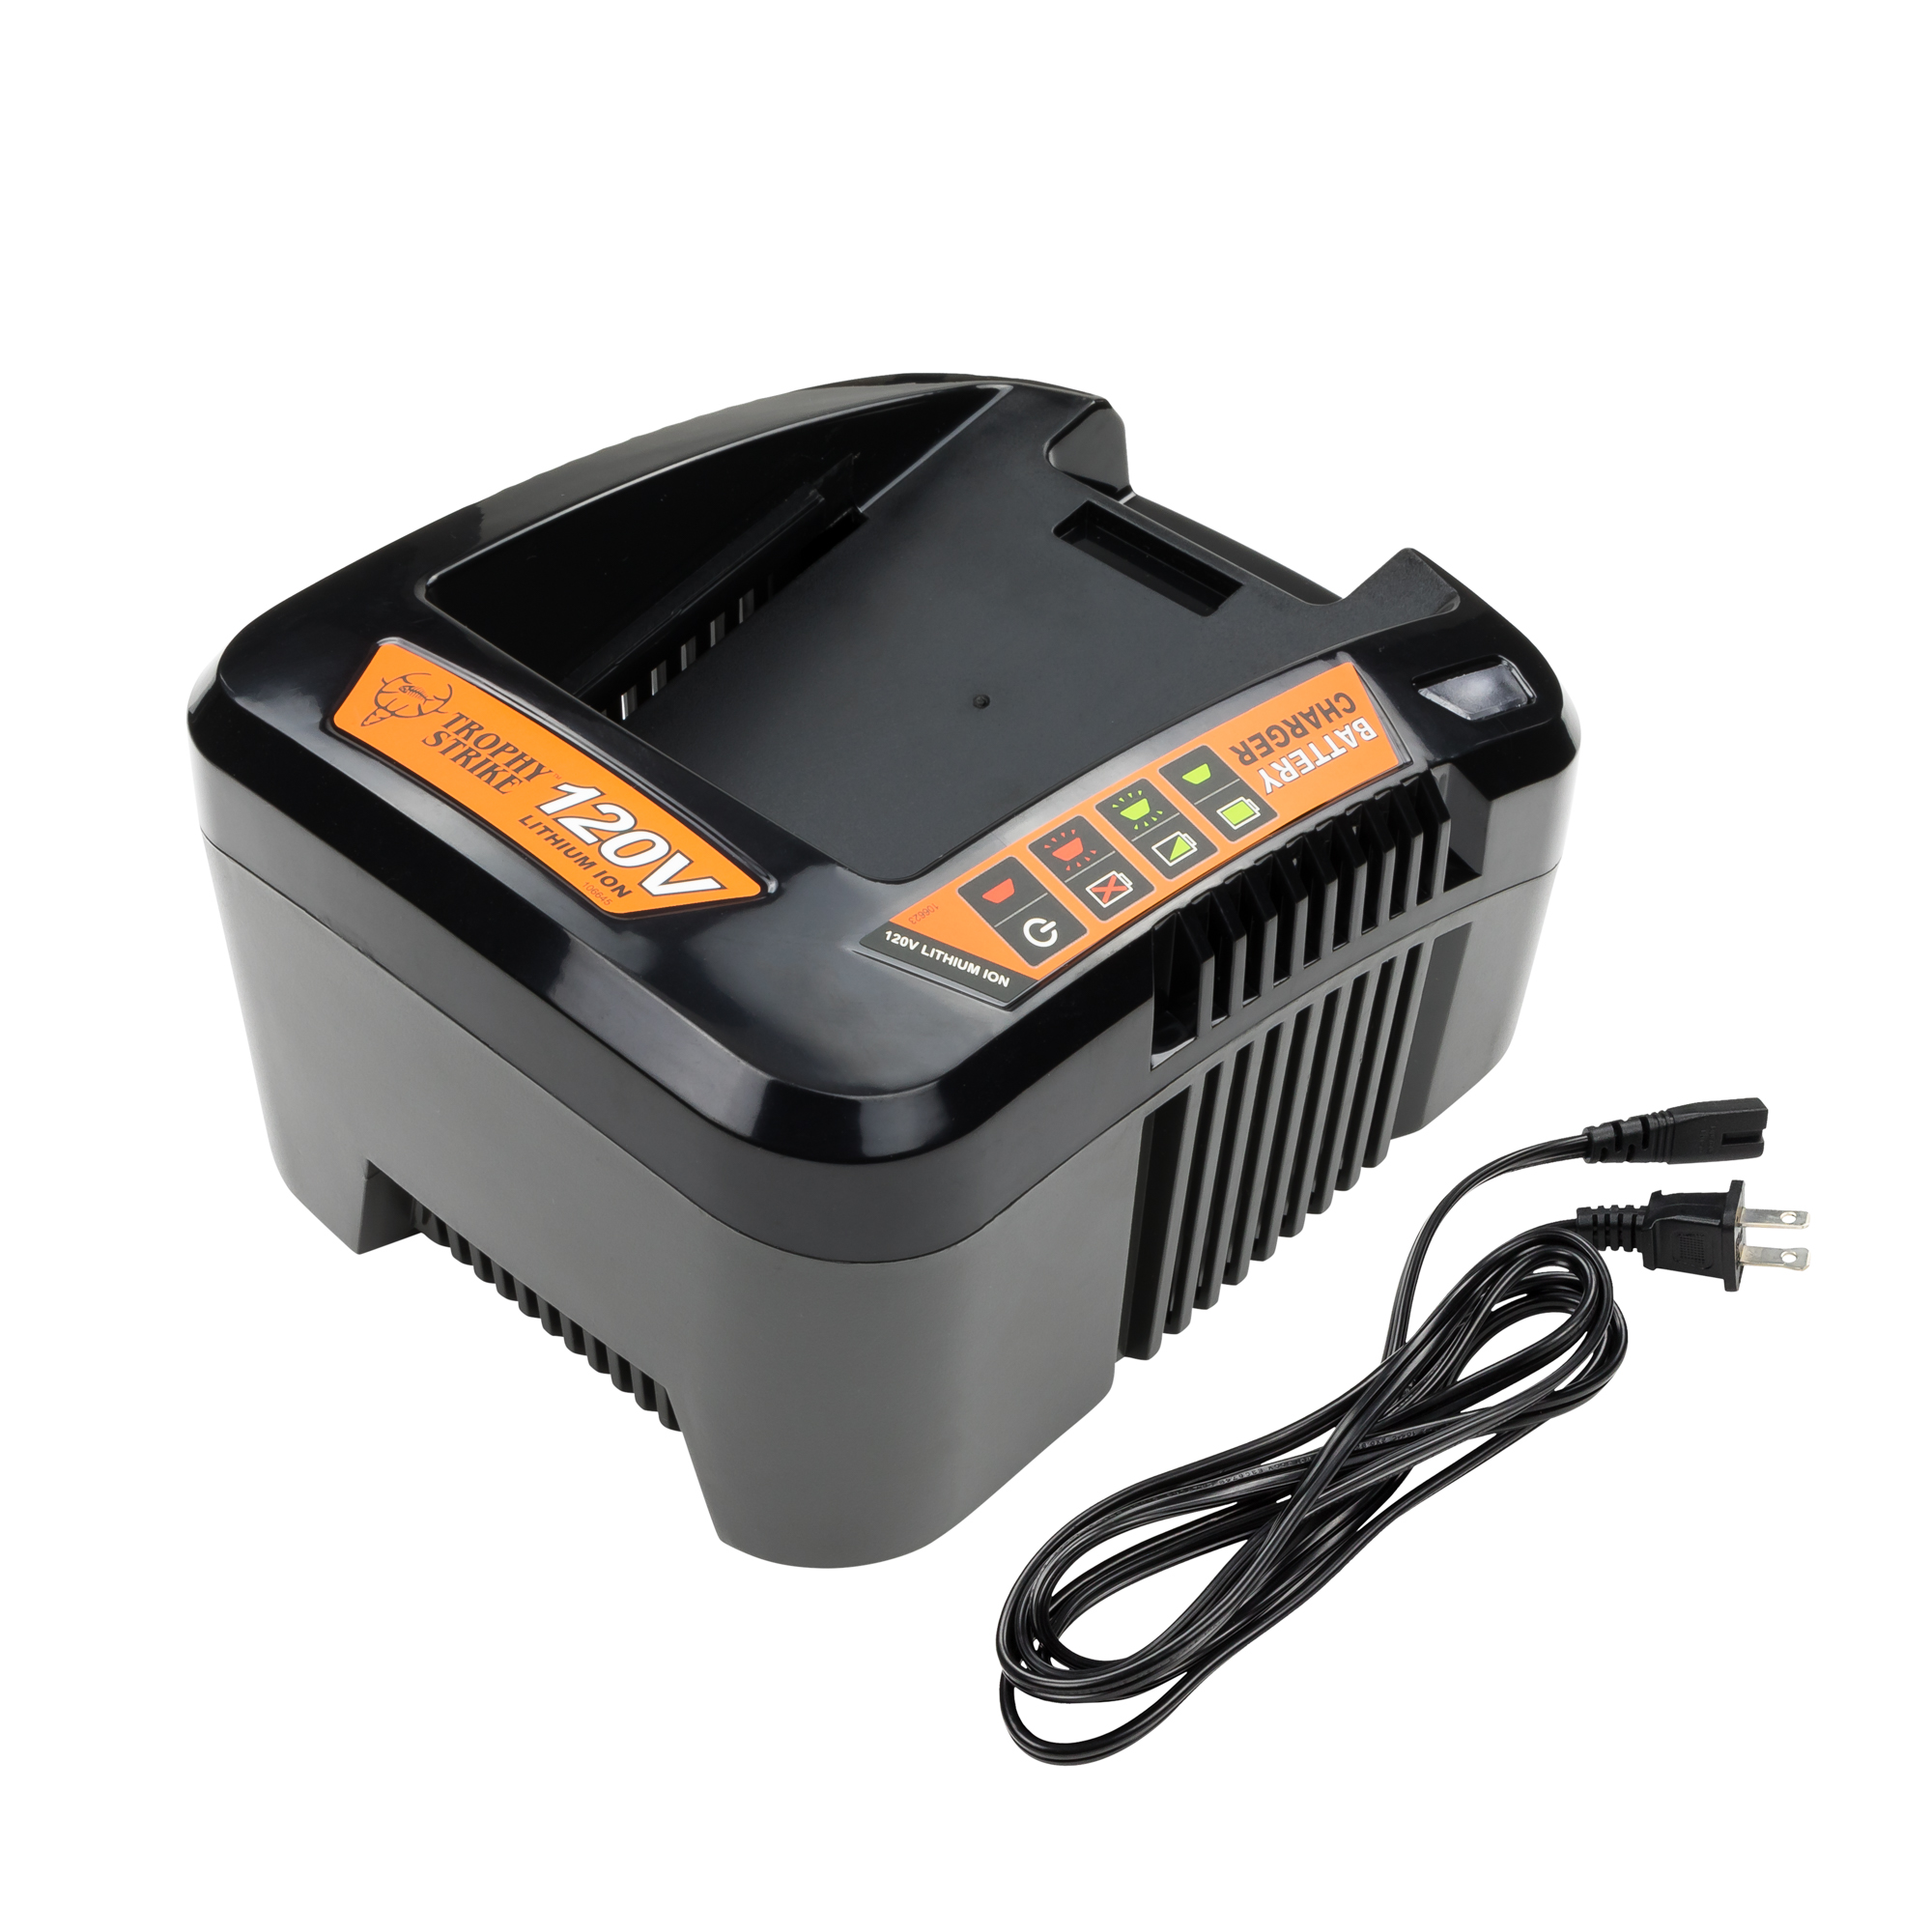 120V Lithium Ion Battery 10″ Ice Auger – Everything You Need to Start  Drilling!